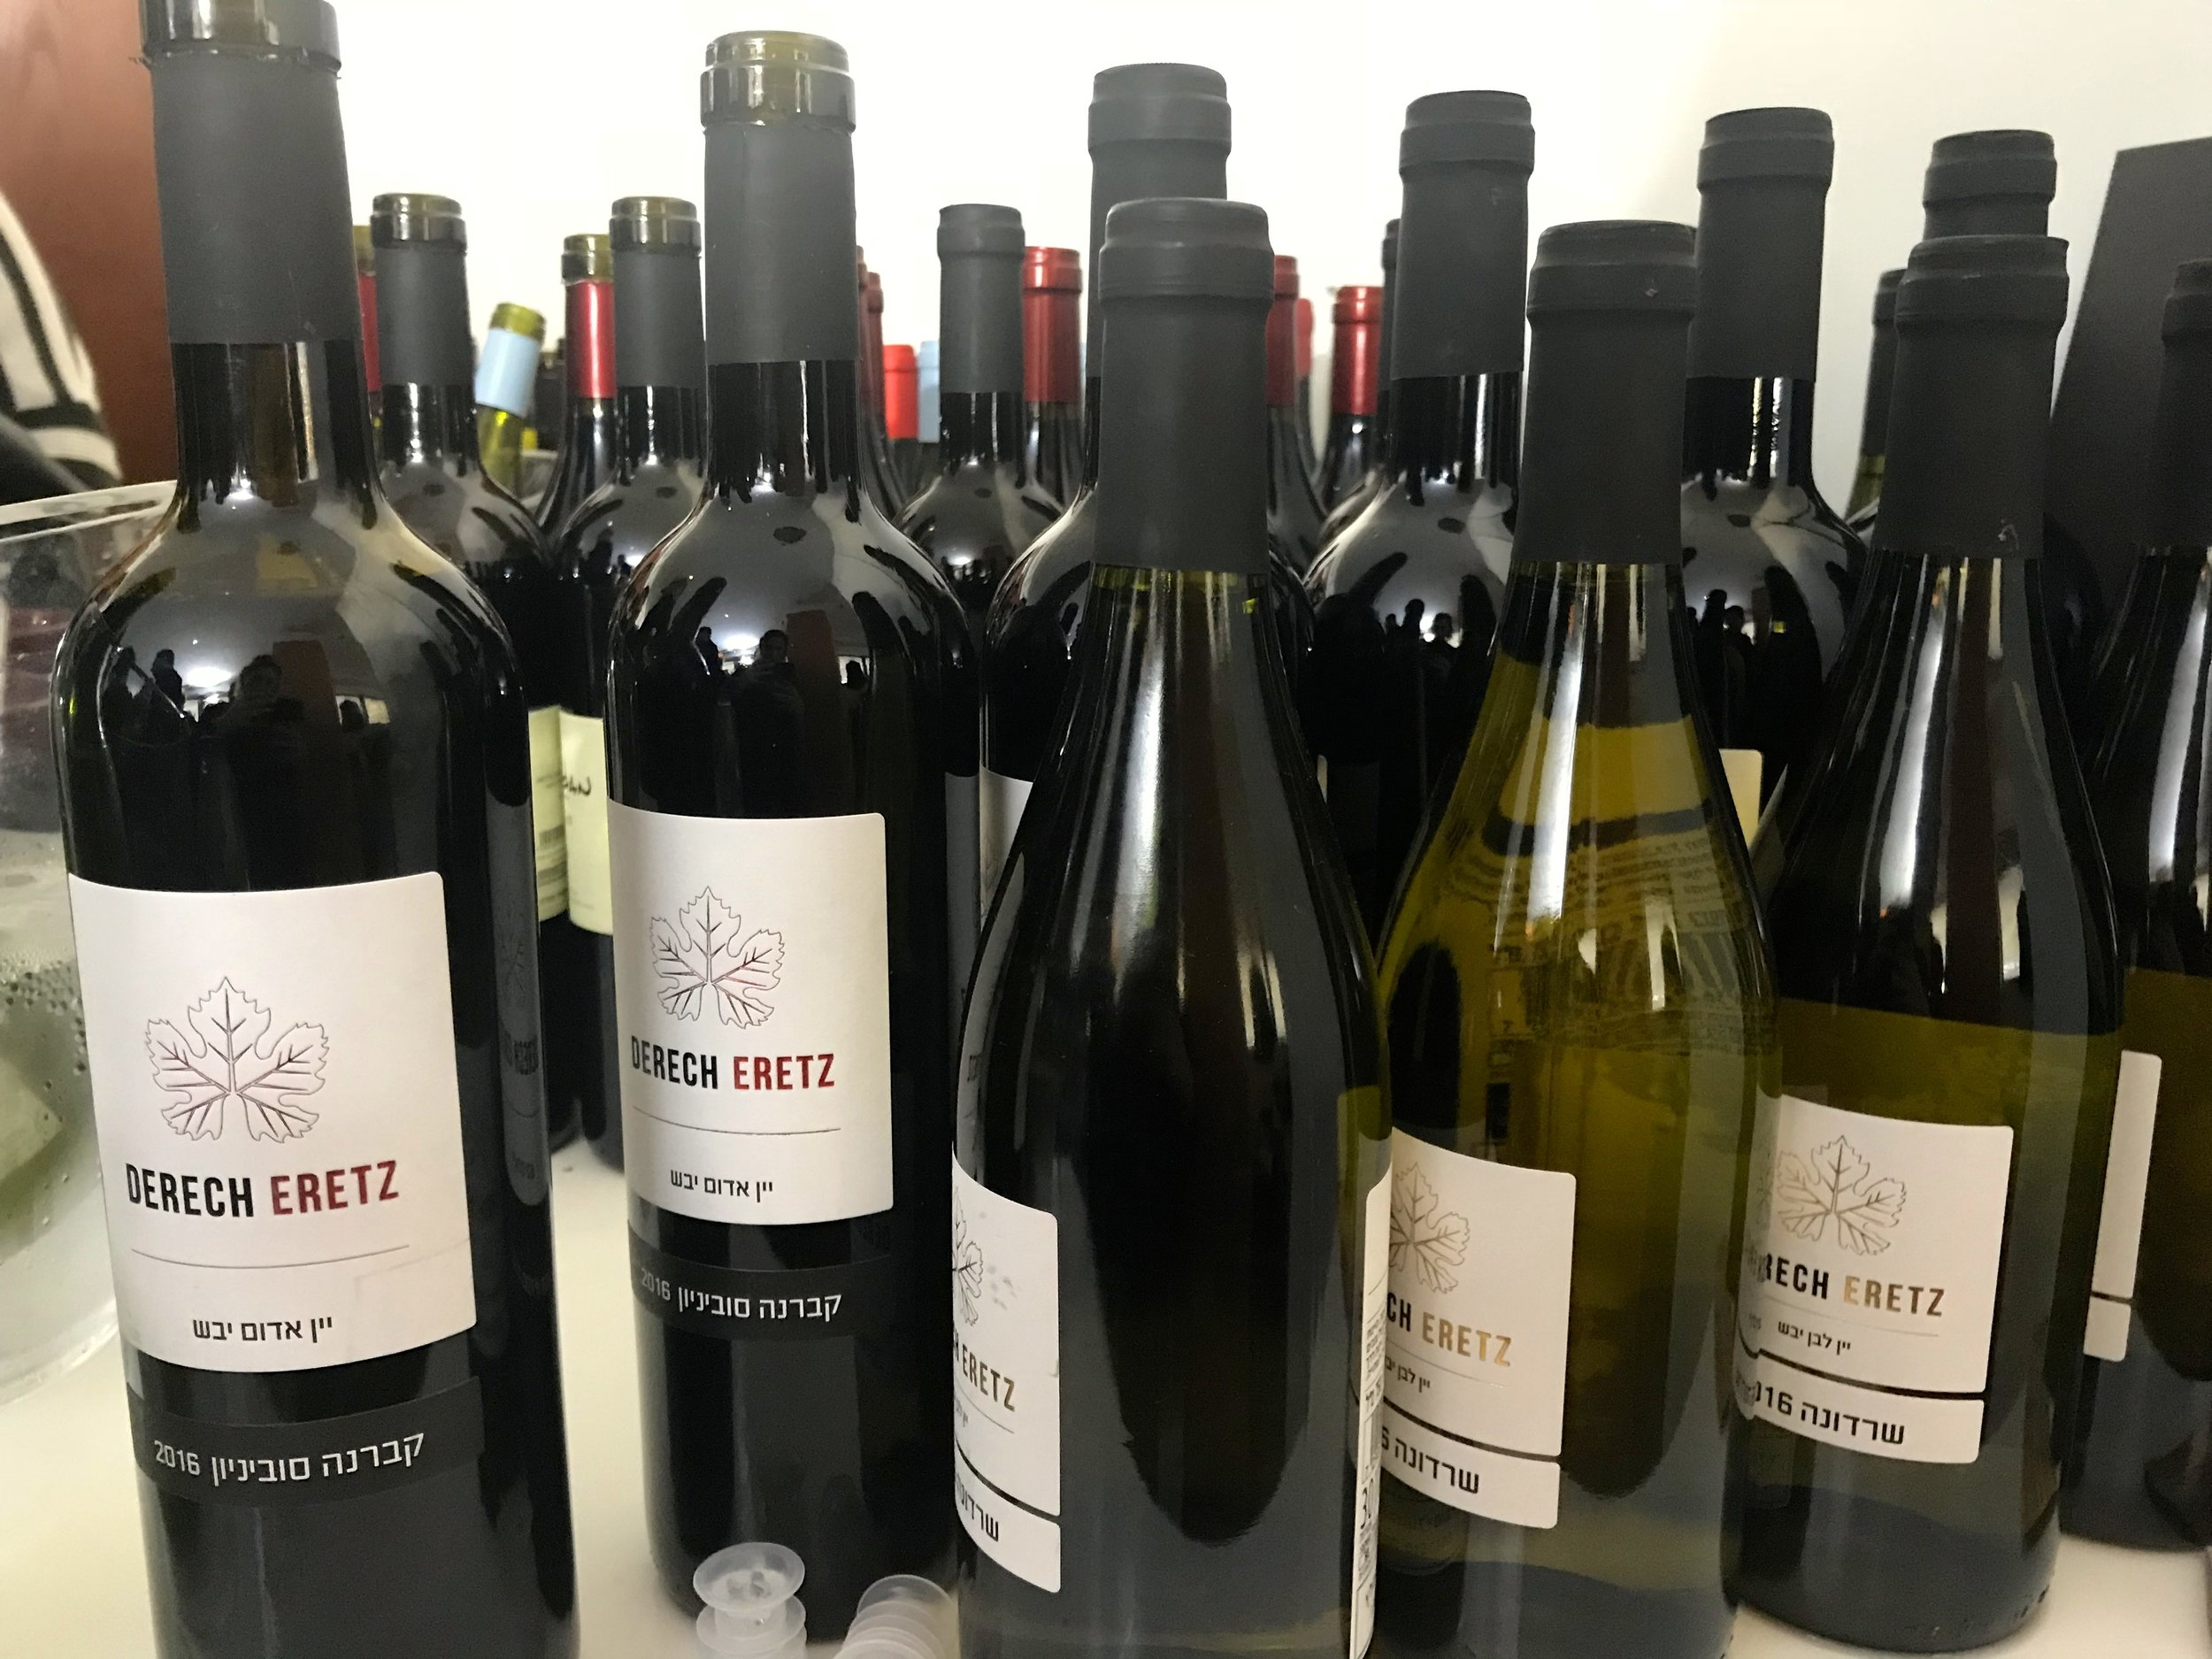 Bottles from the Derech Eretz winery at the Sommelier 2018 exhibition in Tel Aviv. Credit:Eliana Rudee.